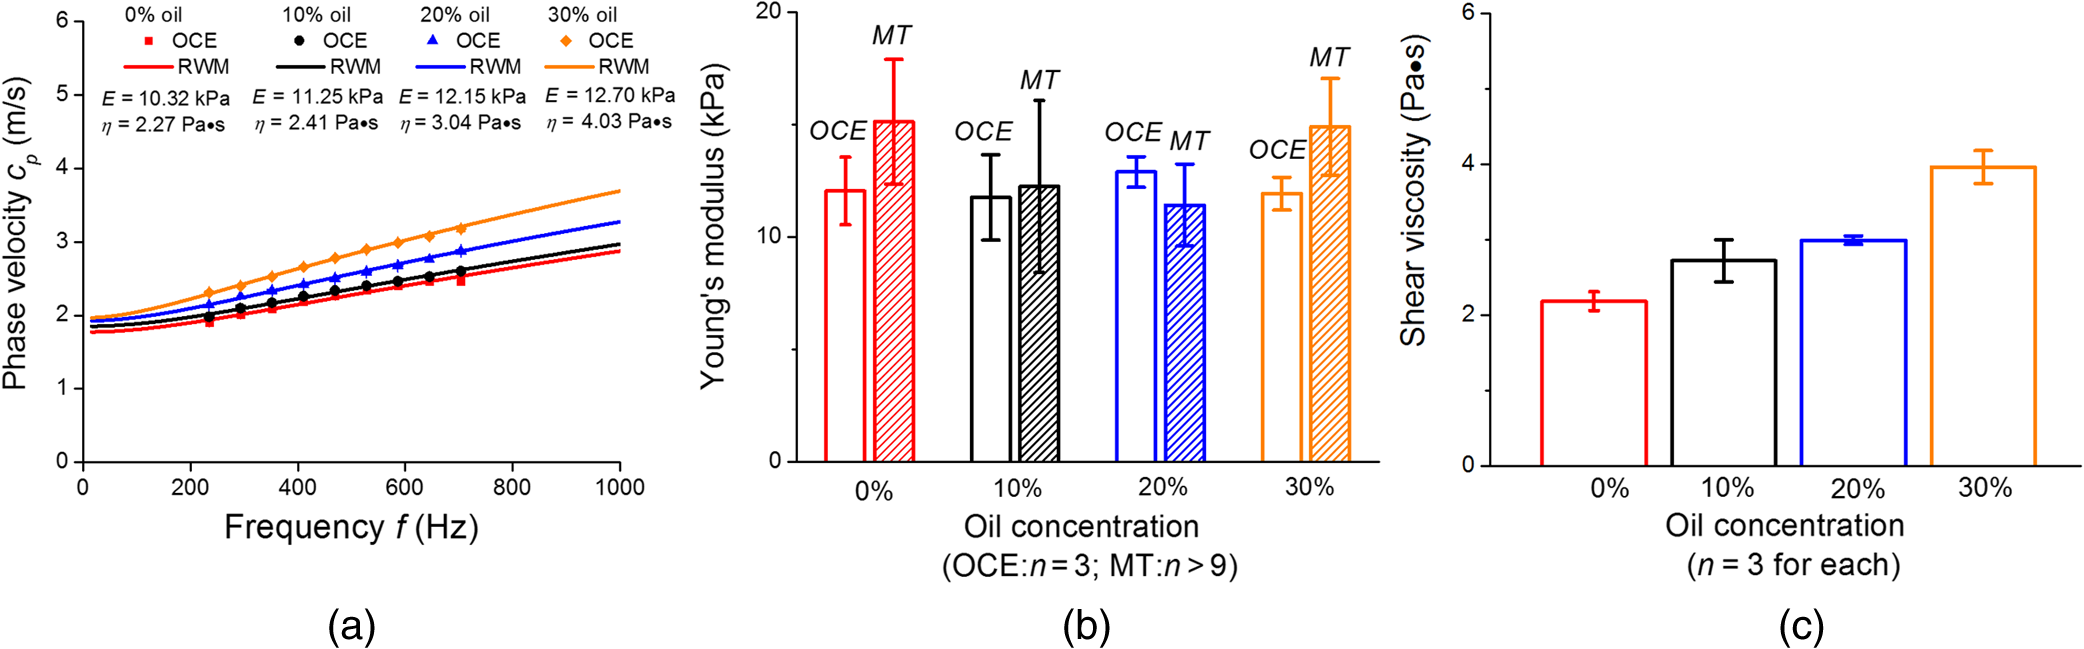 Quantifying Tissue Viscoelasticity Using Optical Coherence Compression Test Engine Diagram Uniaxial Mechanical Testing Mt N9 N 9 For Each Concentration C Shear Viscosity Of The Phantoms As Assessed By Oce And Rwm N3